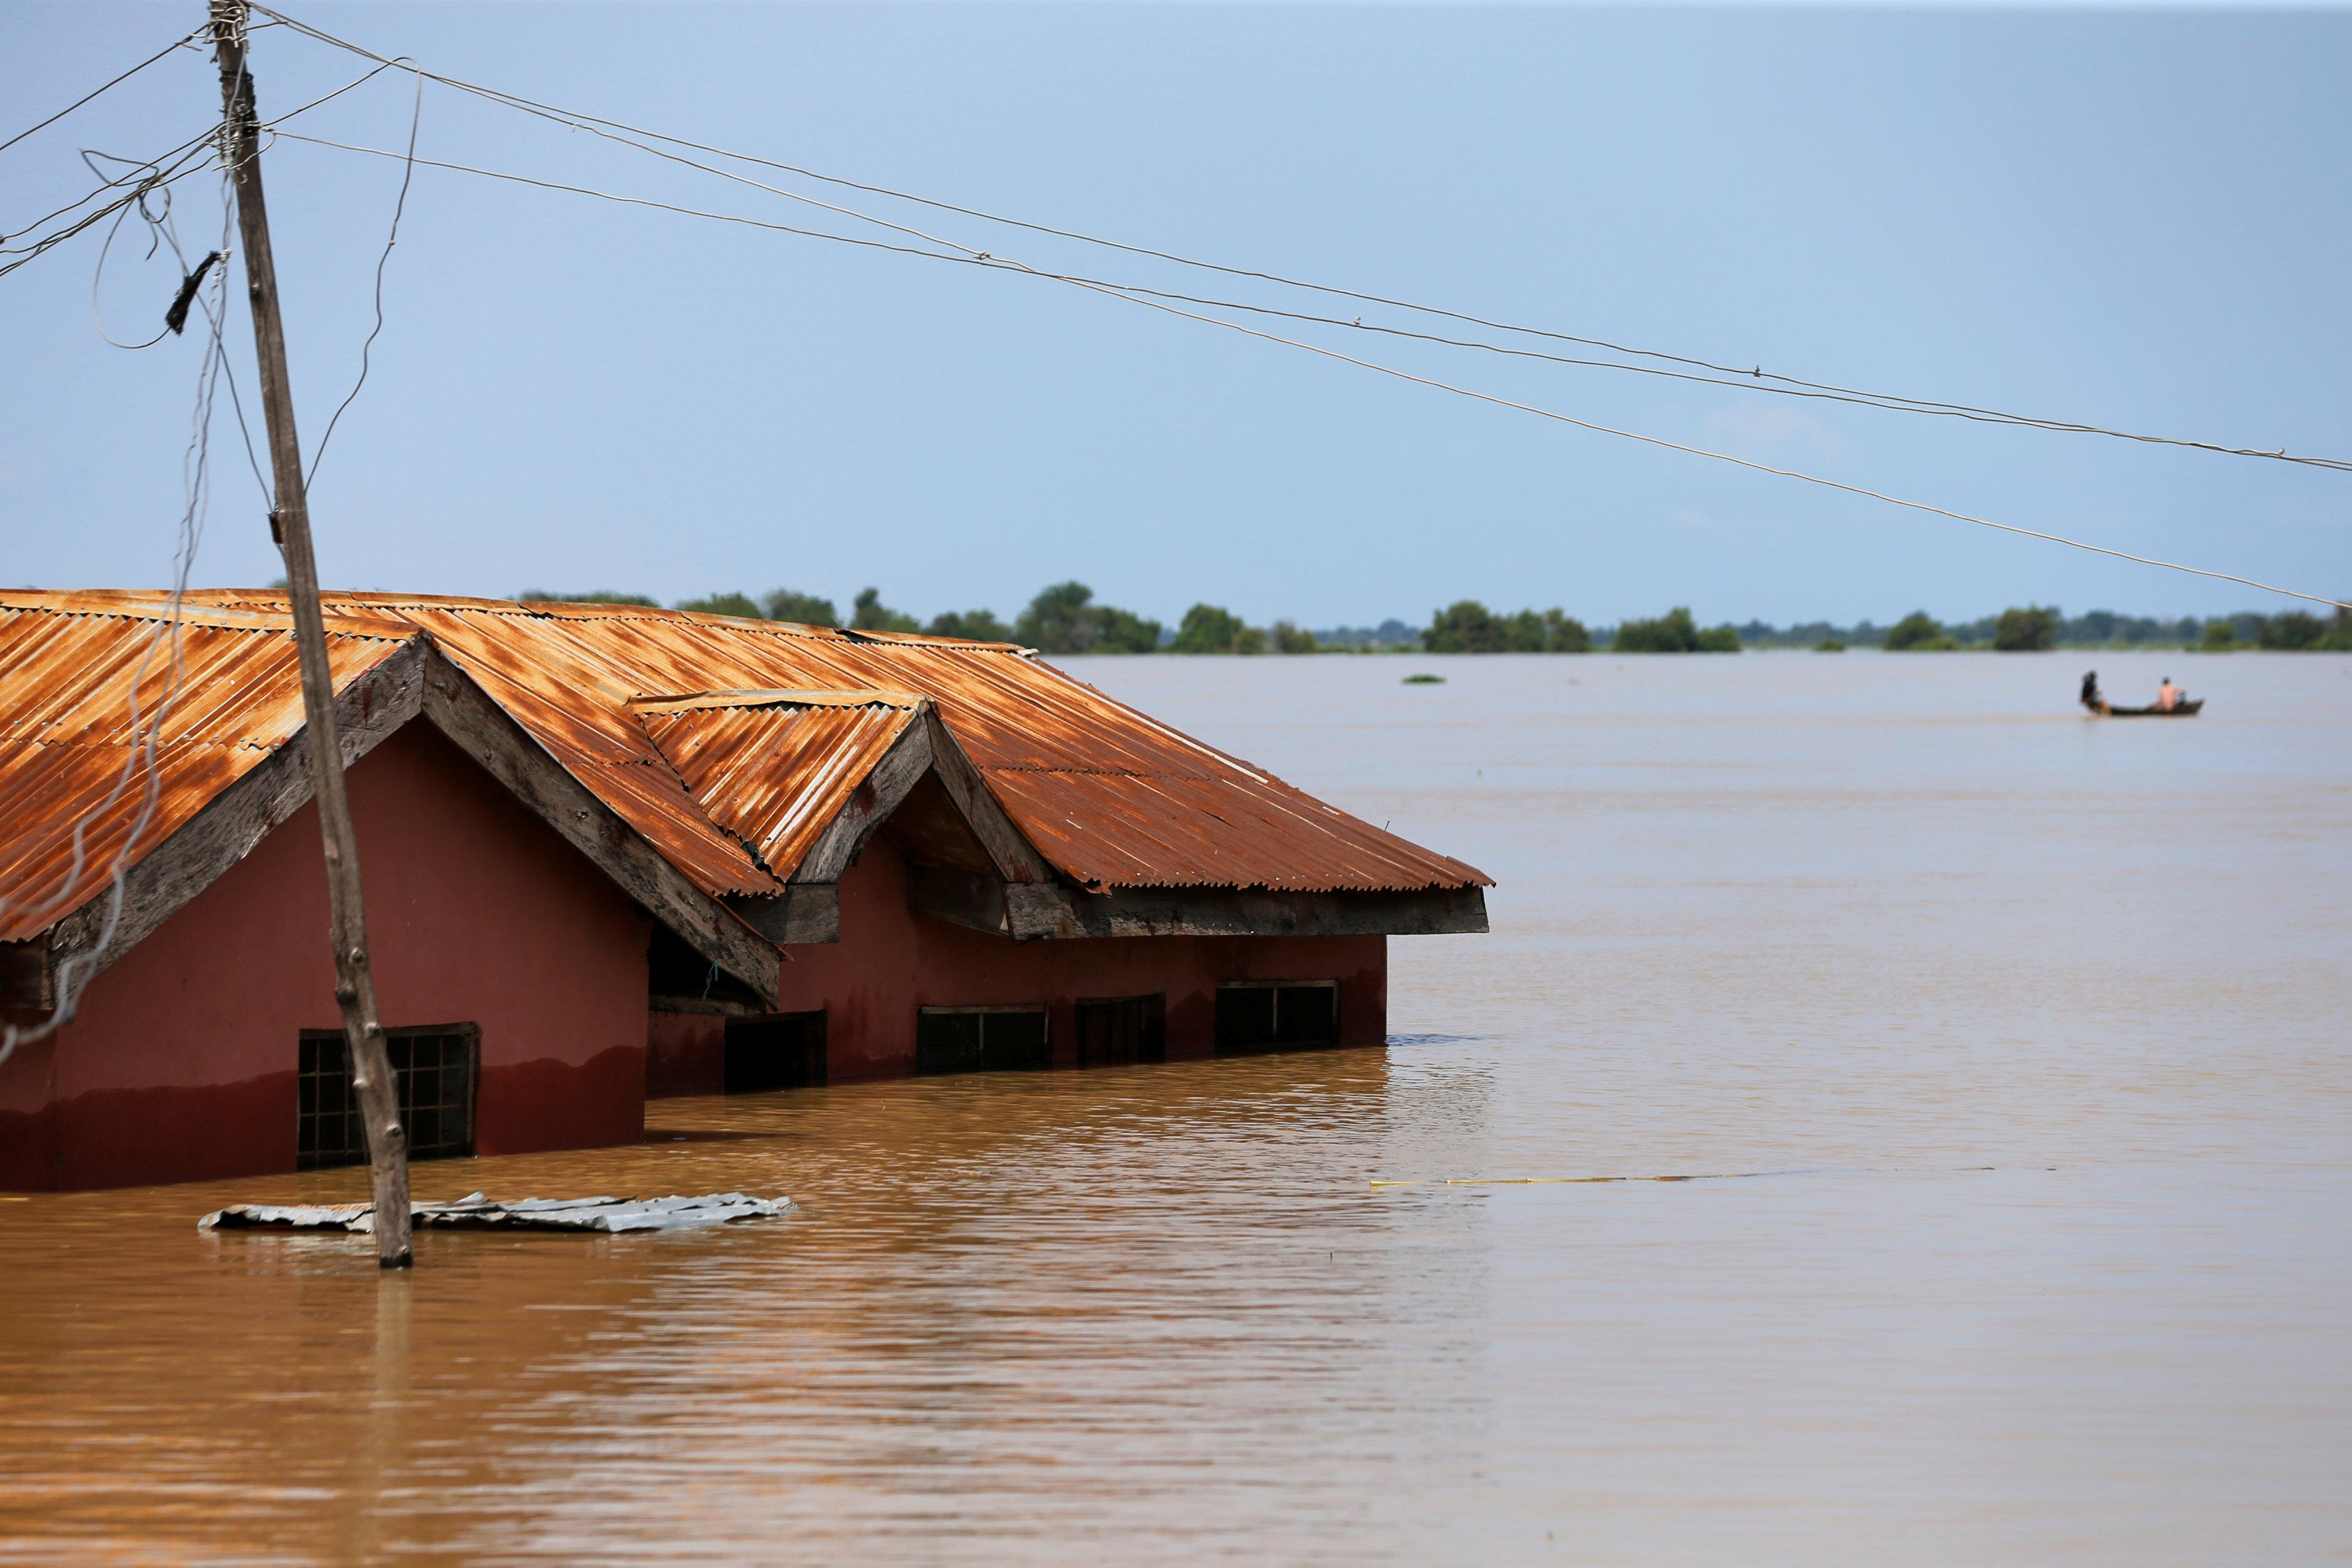 A house partially submerged in flood waters is pictured  in Lokoja city, Kogi State, Nigeria September 17, 2018. Afolabi Sotunde